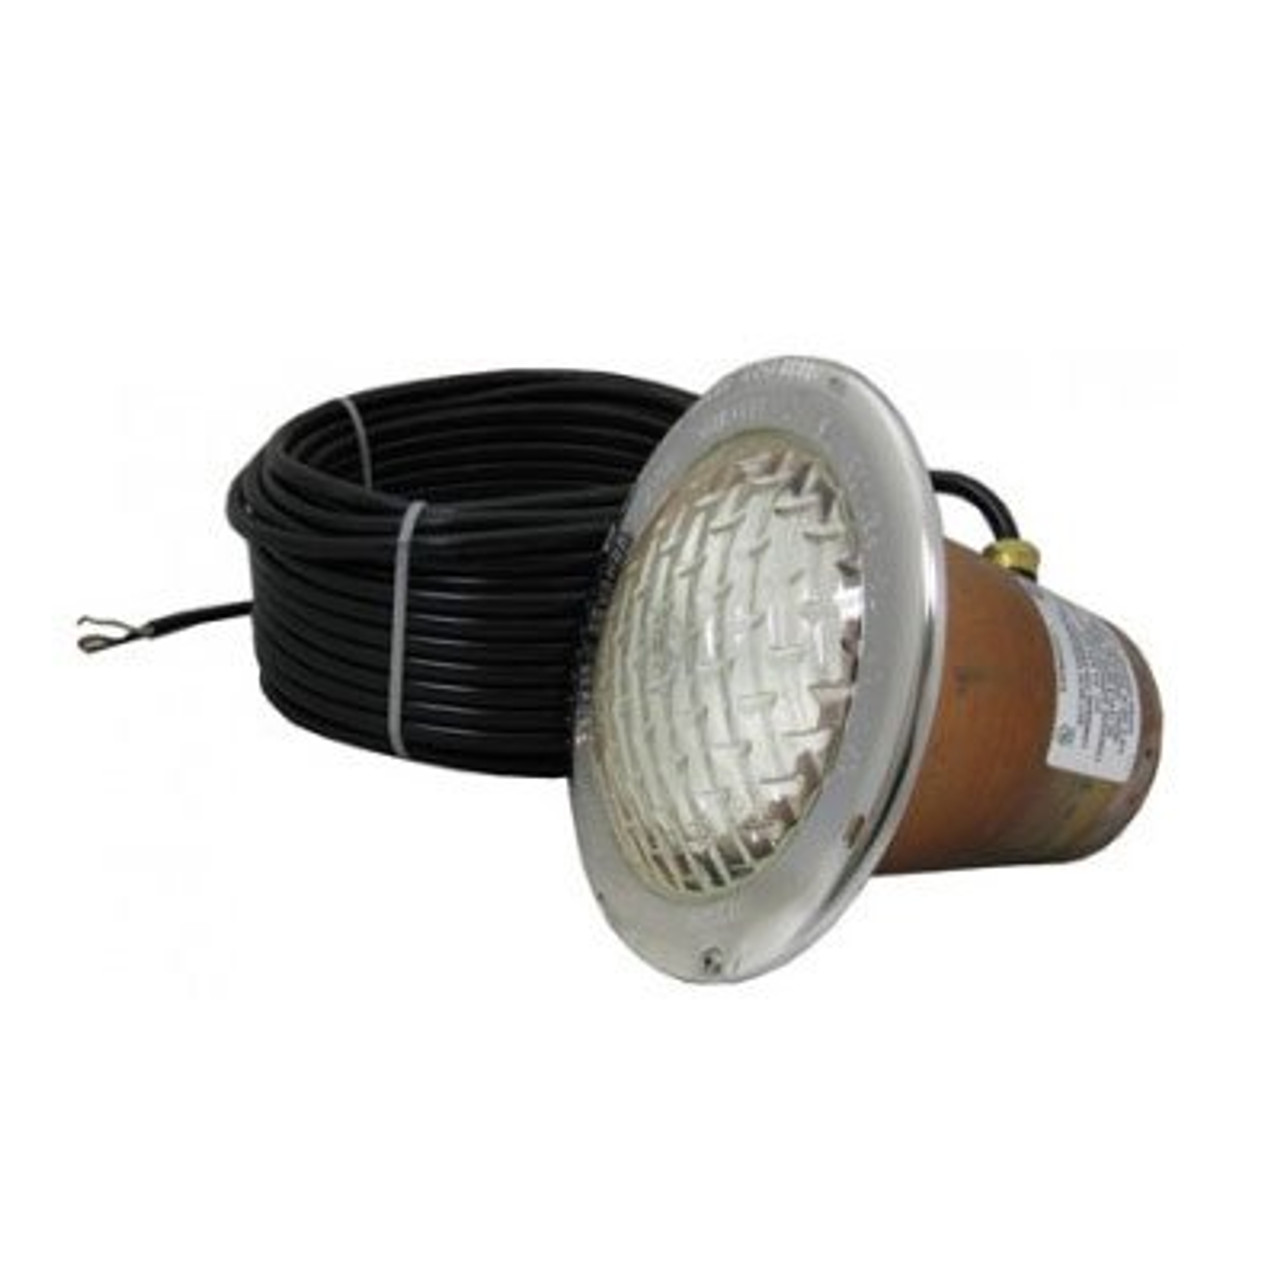 Pentair Aquatic Systems 05086-0100 SwimQuip Pool Light 500W 120V & 100 ft. Cord